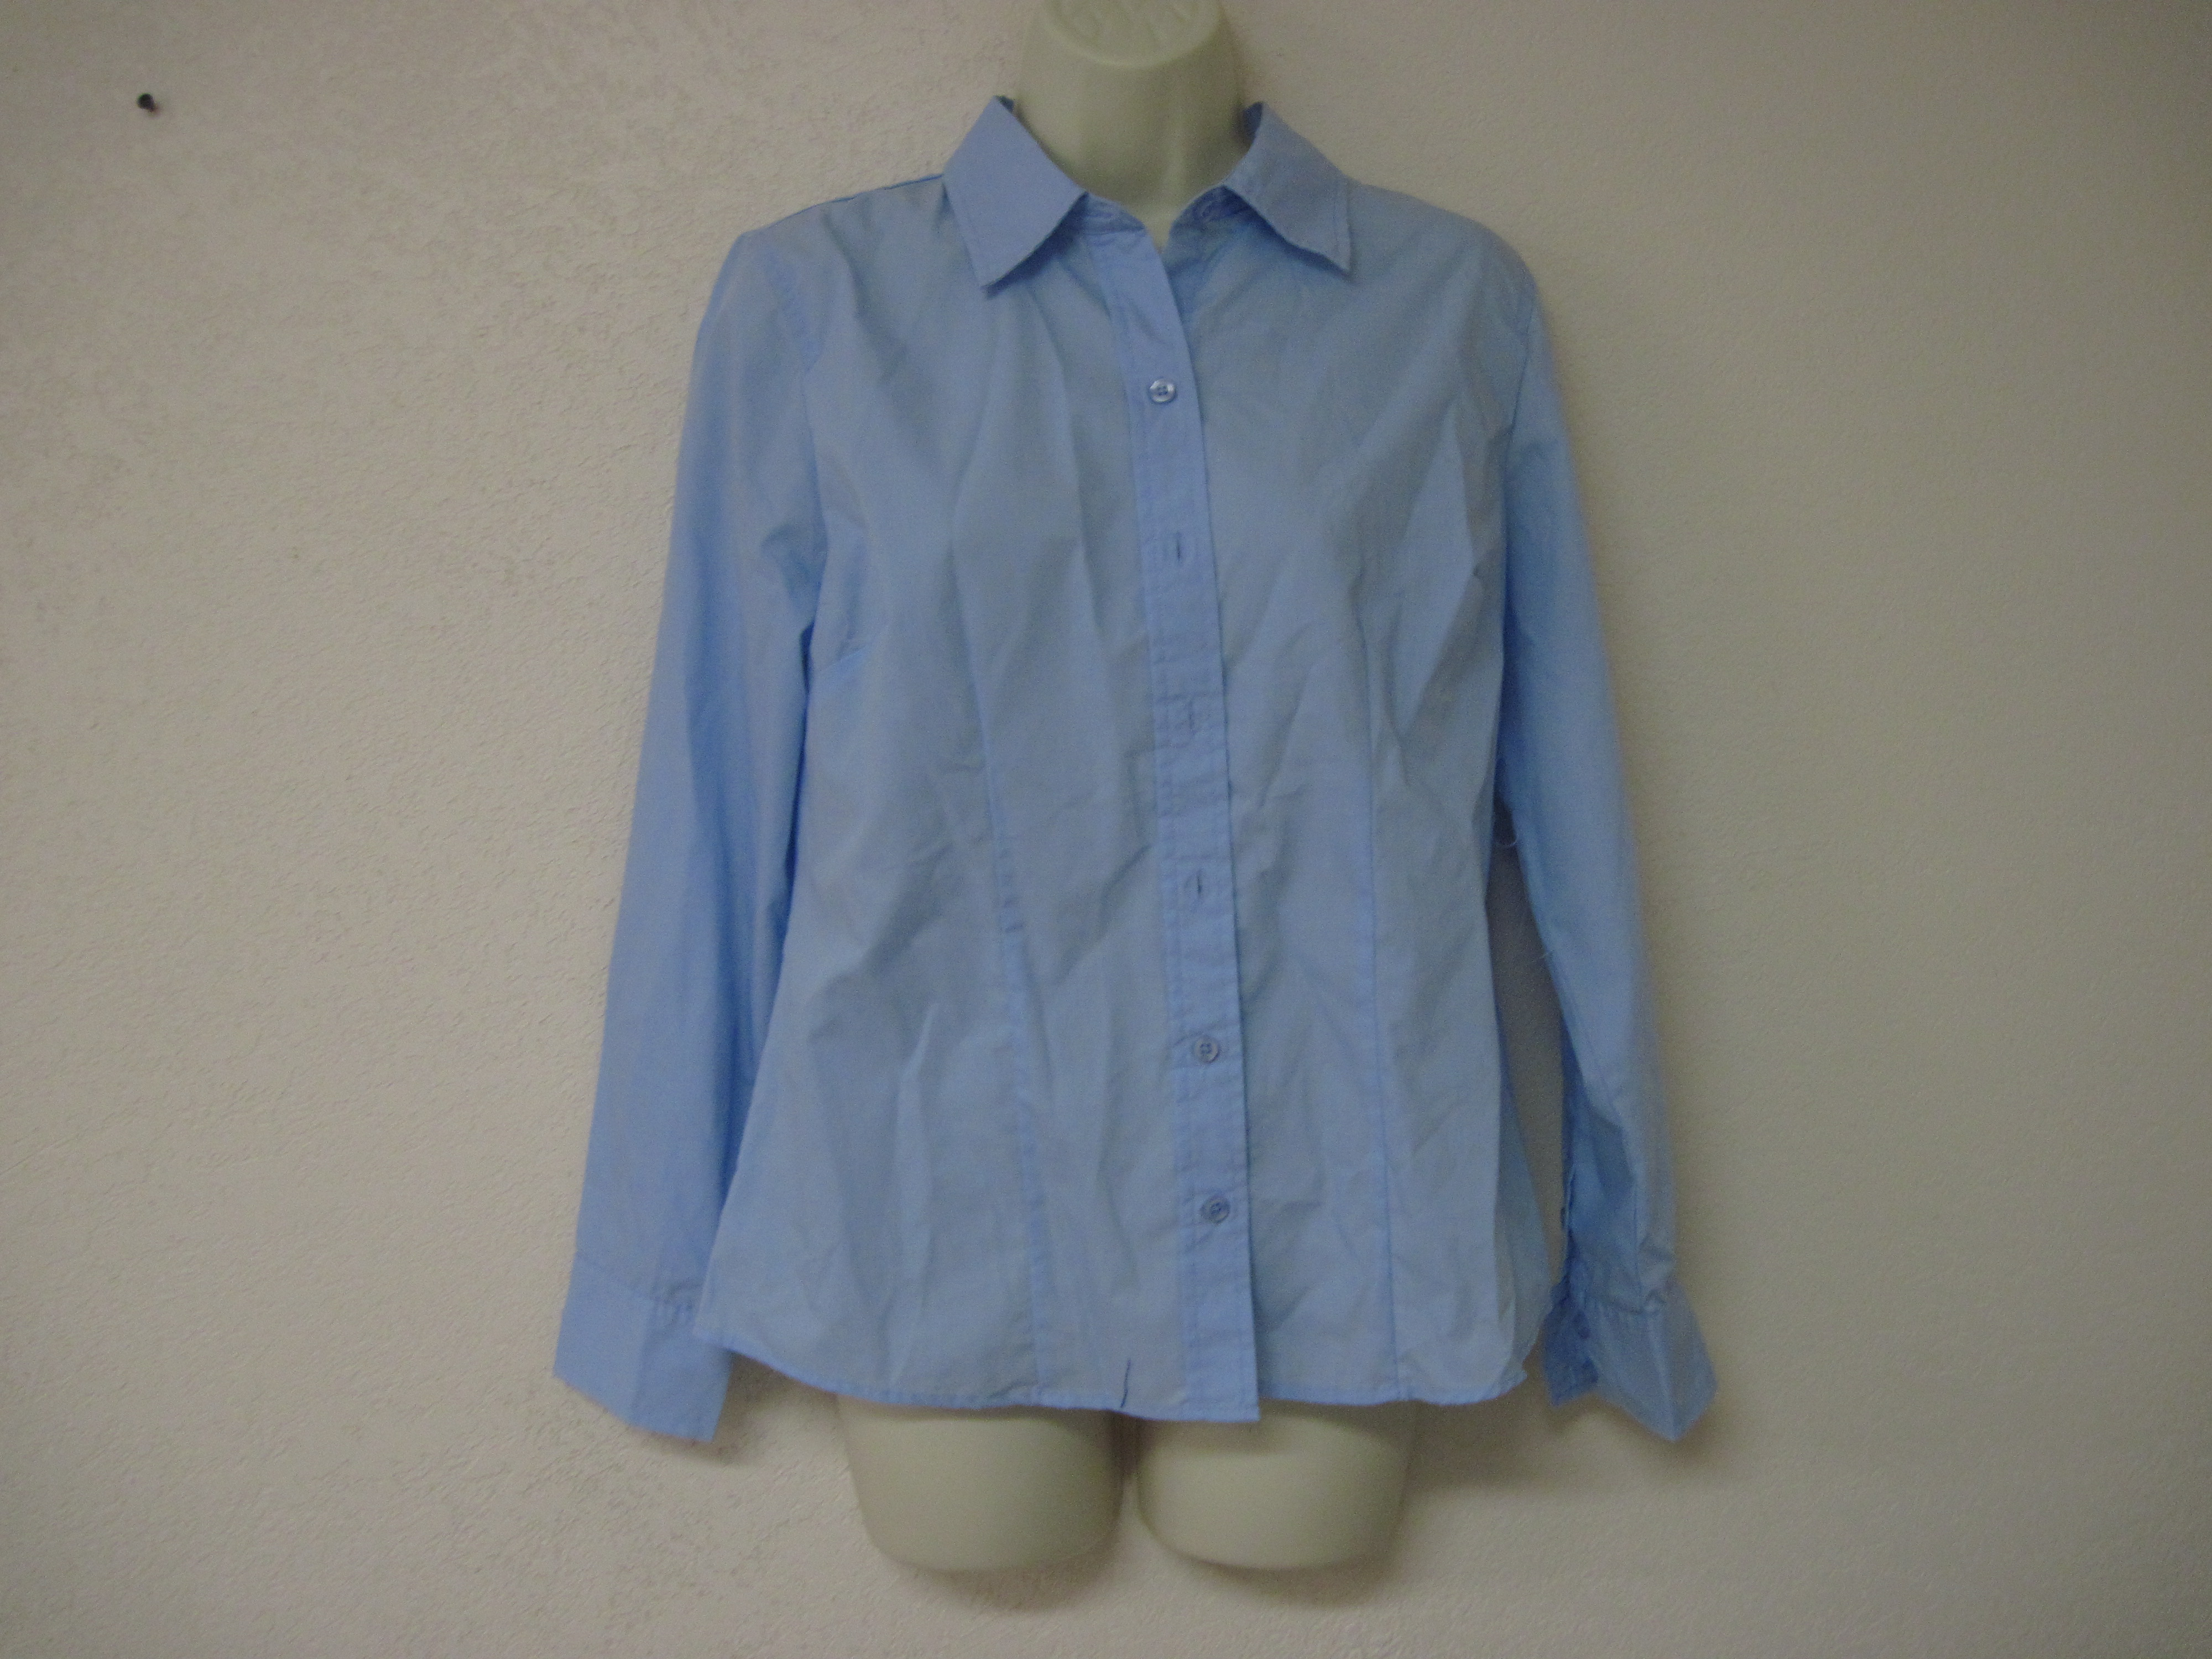 Basic Editions Sz Small Easy Care Woven Shirt (long sleeve,blue)